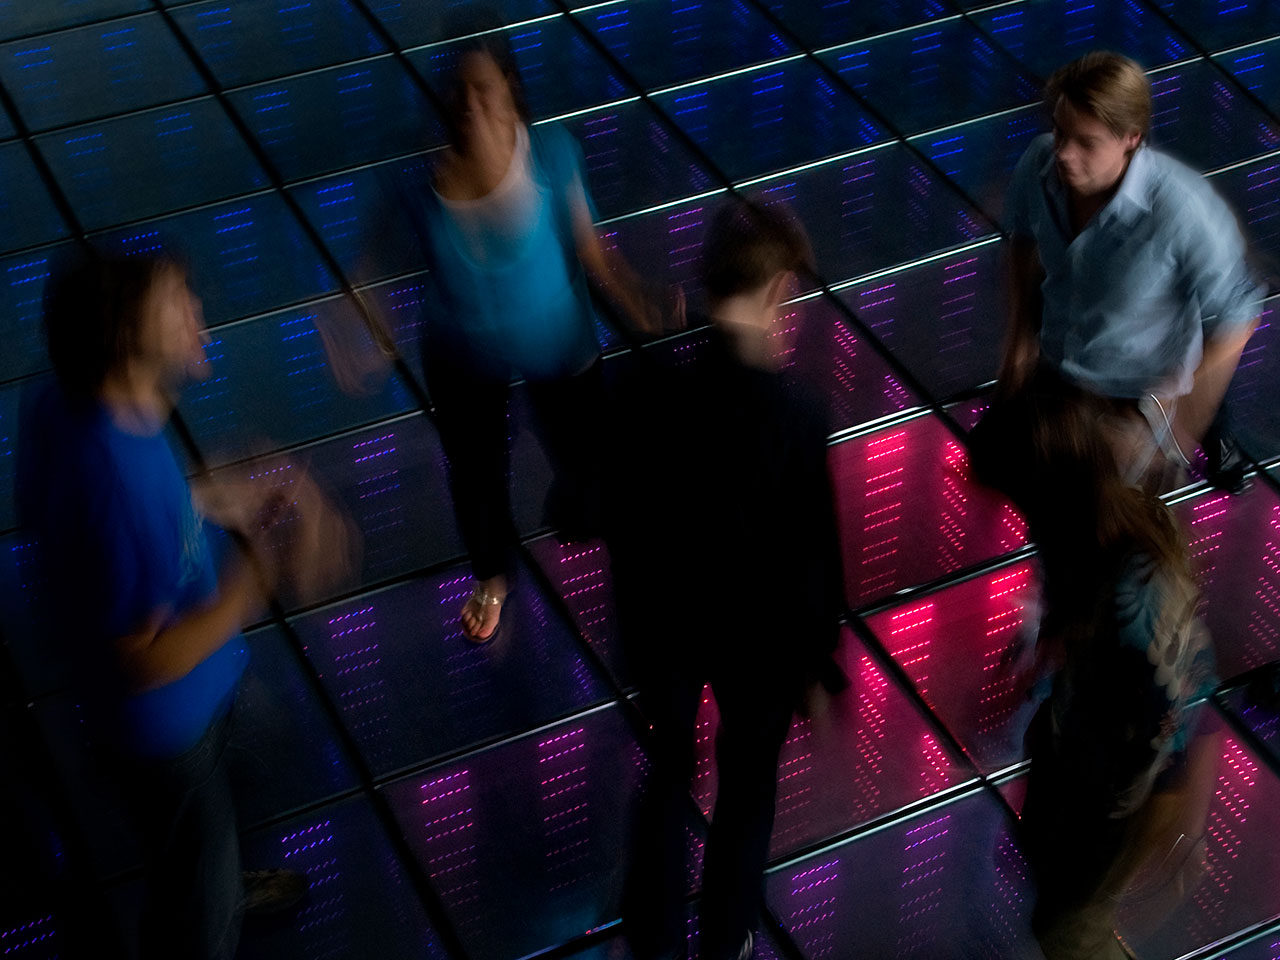 SUSTAINABLE DANCE FLOOR by Daan Roosegaarde. Photo © Studio Roosegaarde..